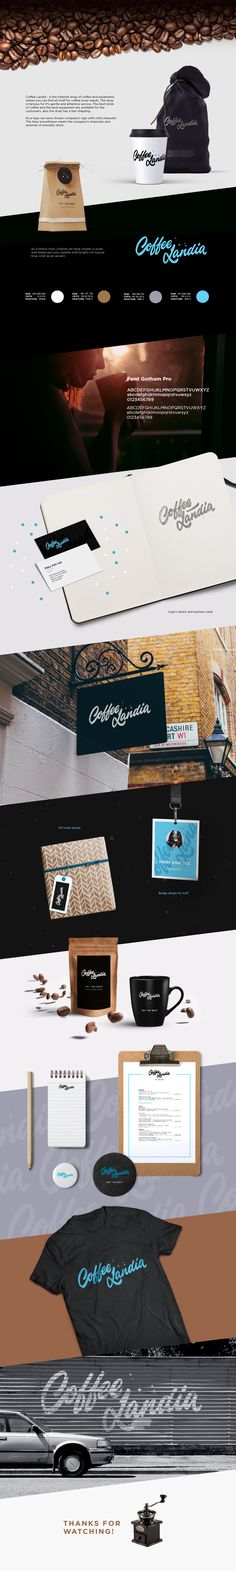 "Check out this @Behance project: ""CoffeeLandia"" https://www.behance.net/gallery/47201193/CoffeeLandia"